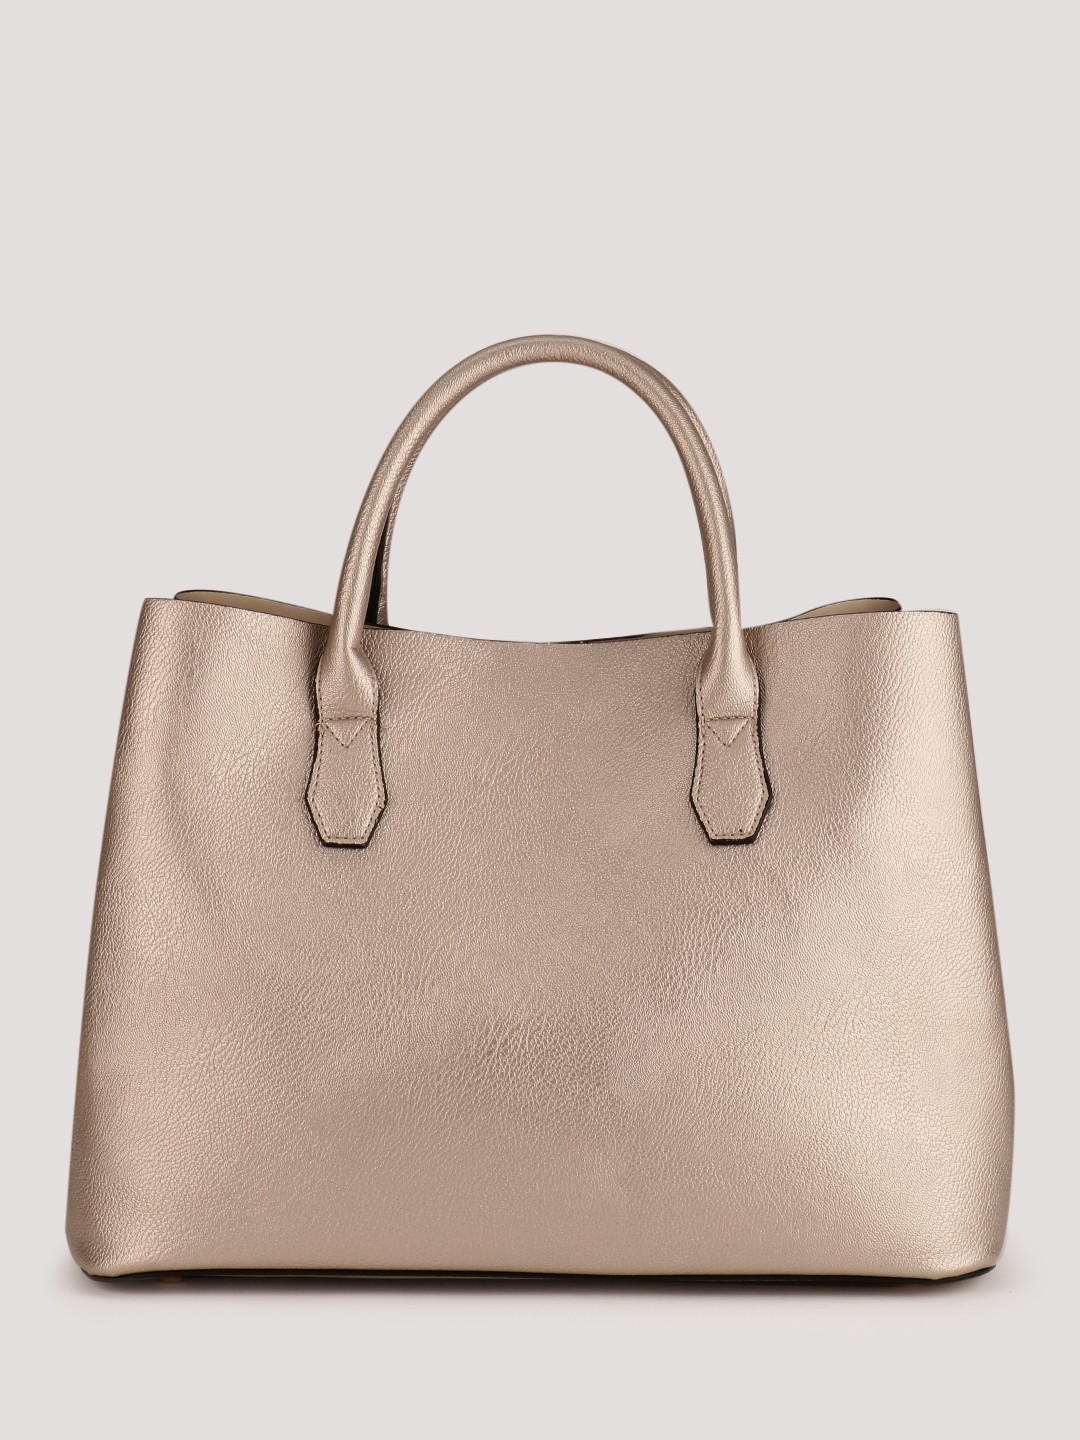 good out x so cheap buying new Buy New Look Rose Gold Metallic Tote Bag for Girls Online in ...